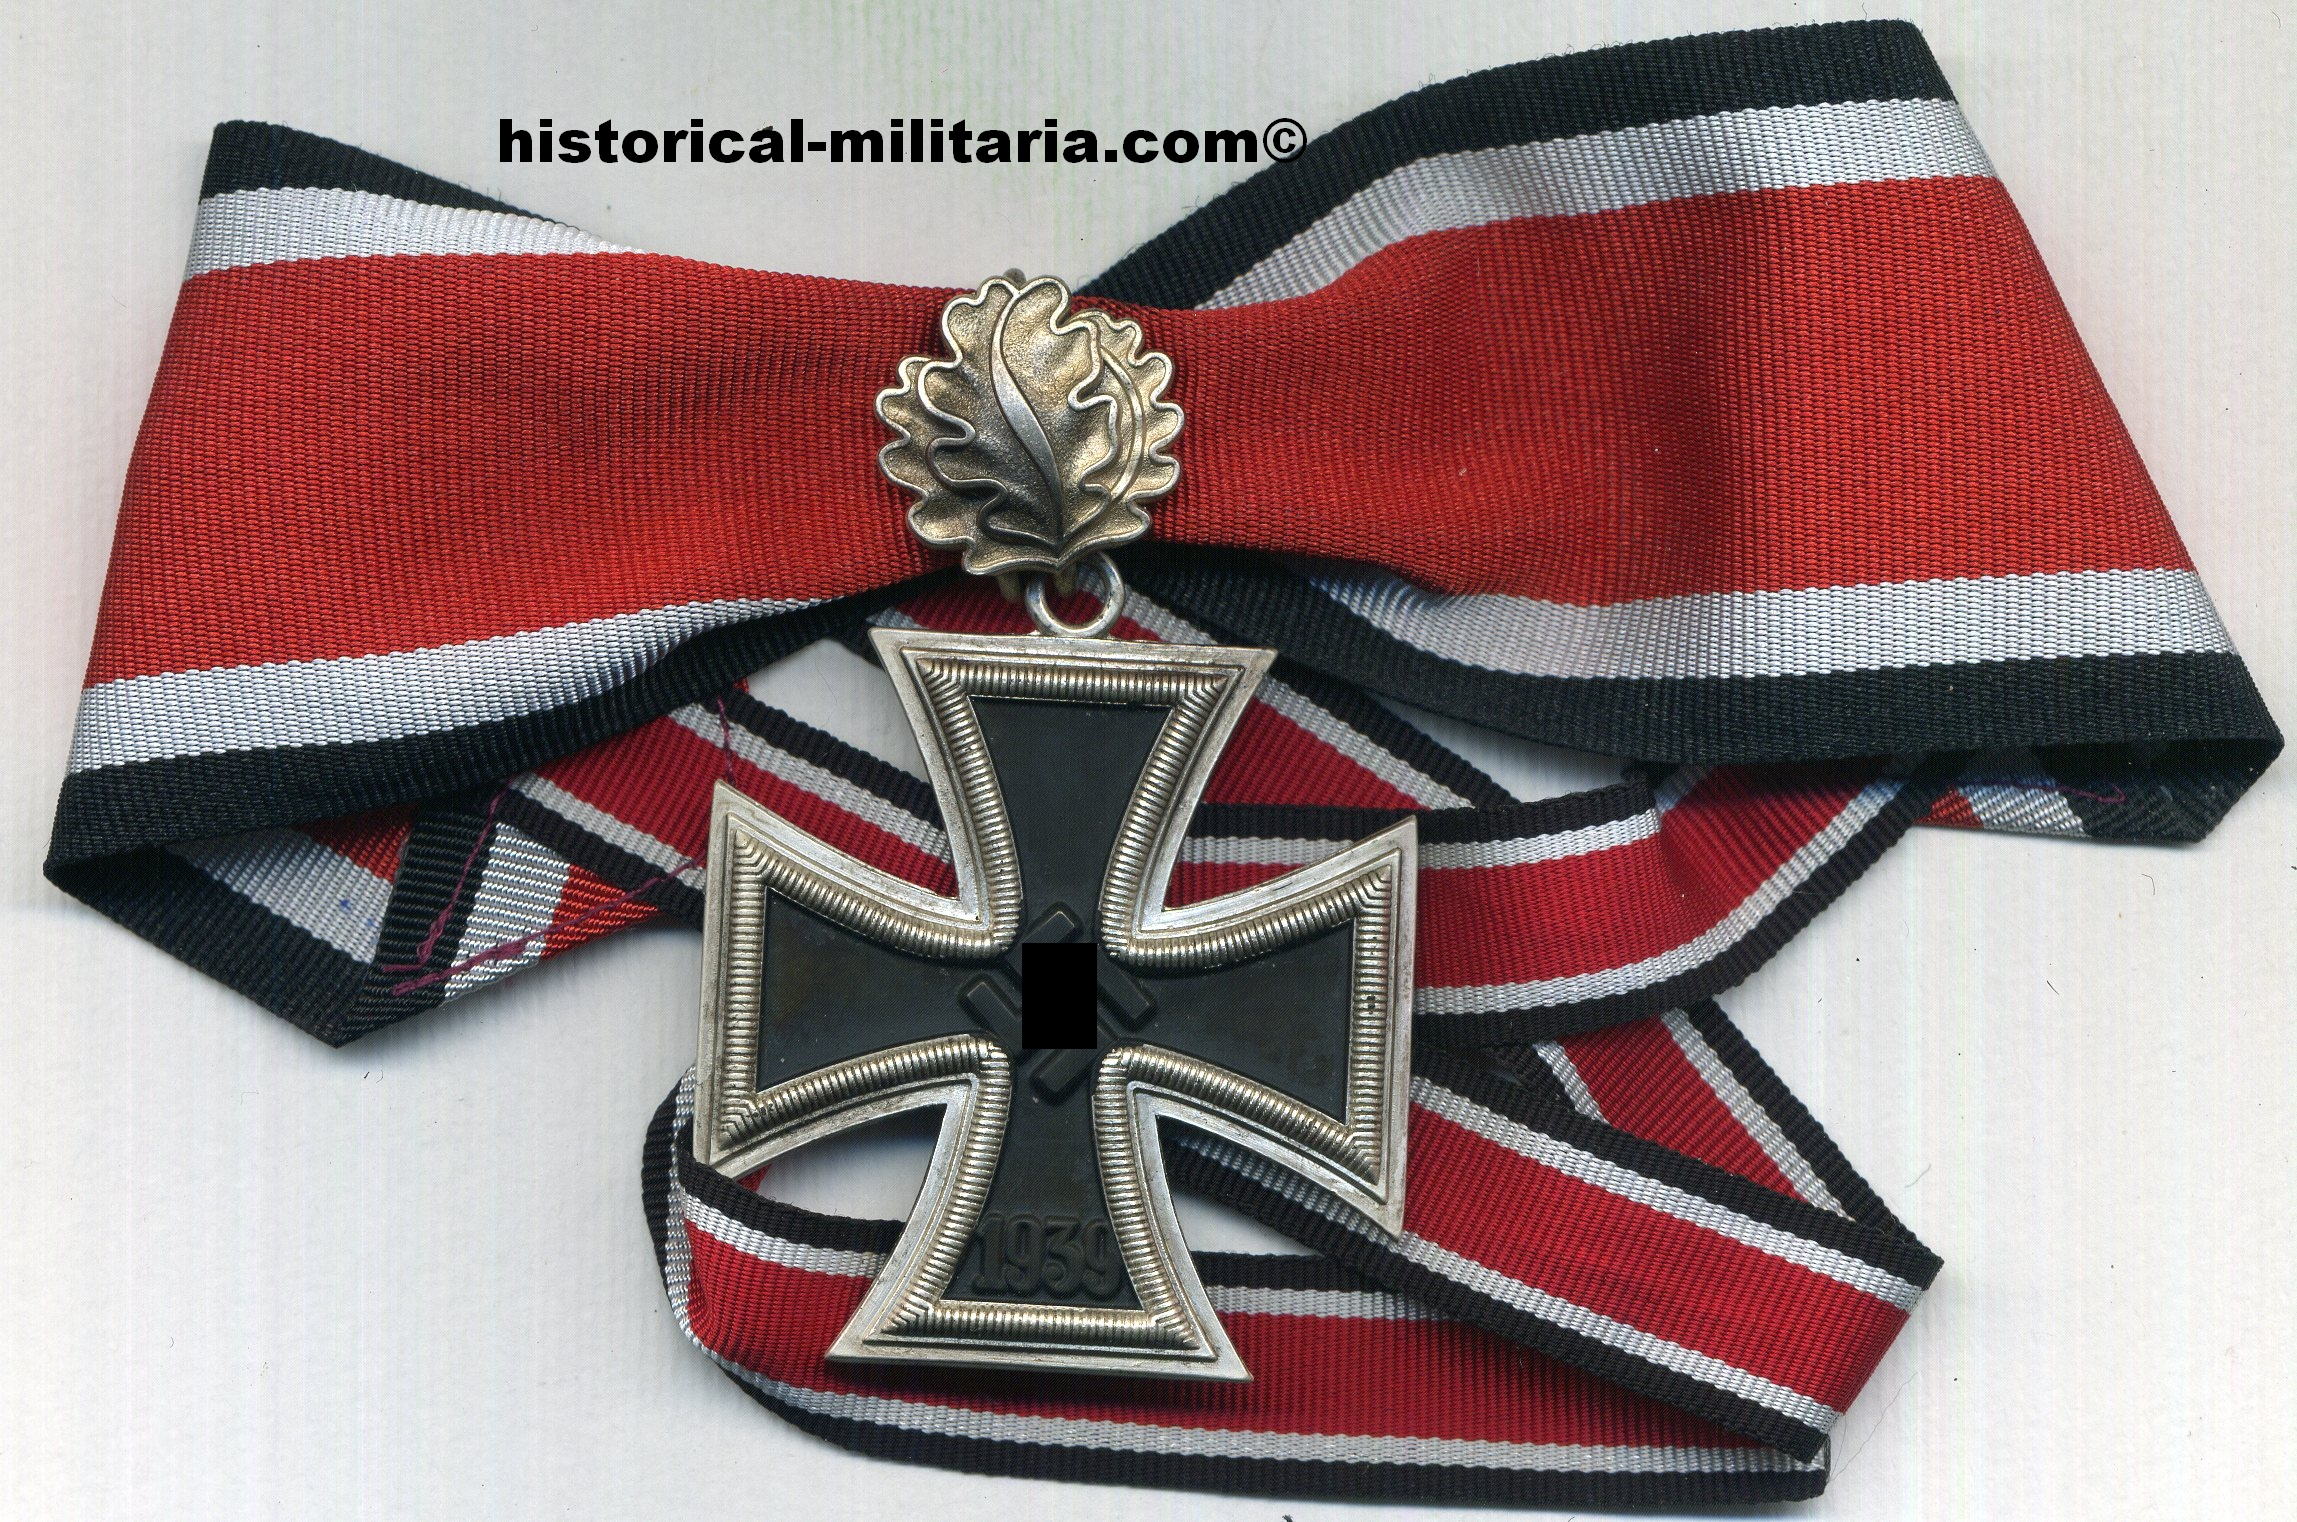 Ritterkreuz mit Eichenlaub am Kragenband - Knights Cross of the Iron Cross with Oakleaves incl. neck ribbon - La Croce di Cavaliere della Croce di Ferro con fronde di quercia e nastrino pere il collo